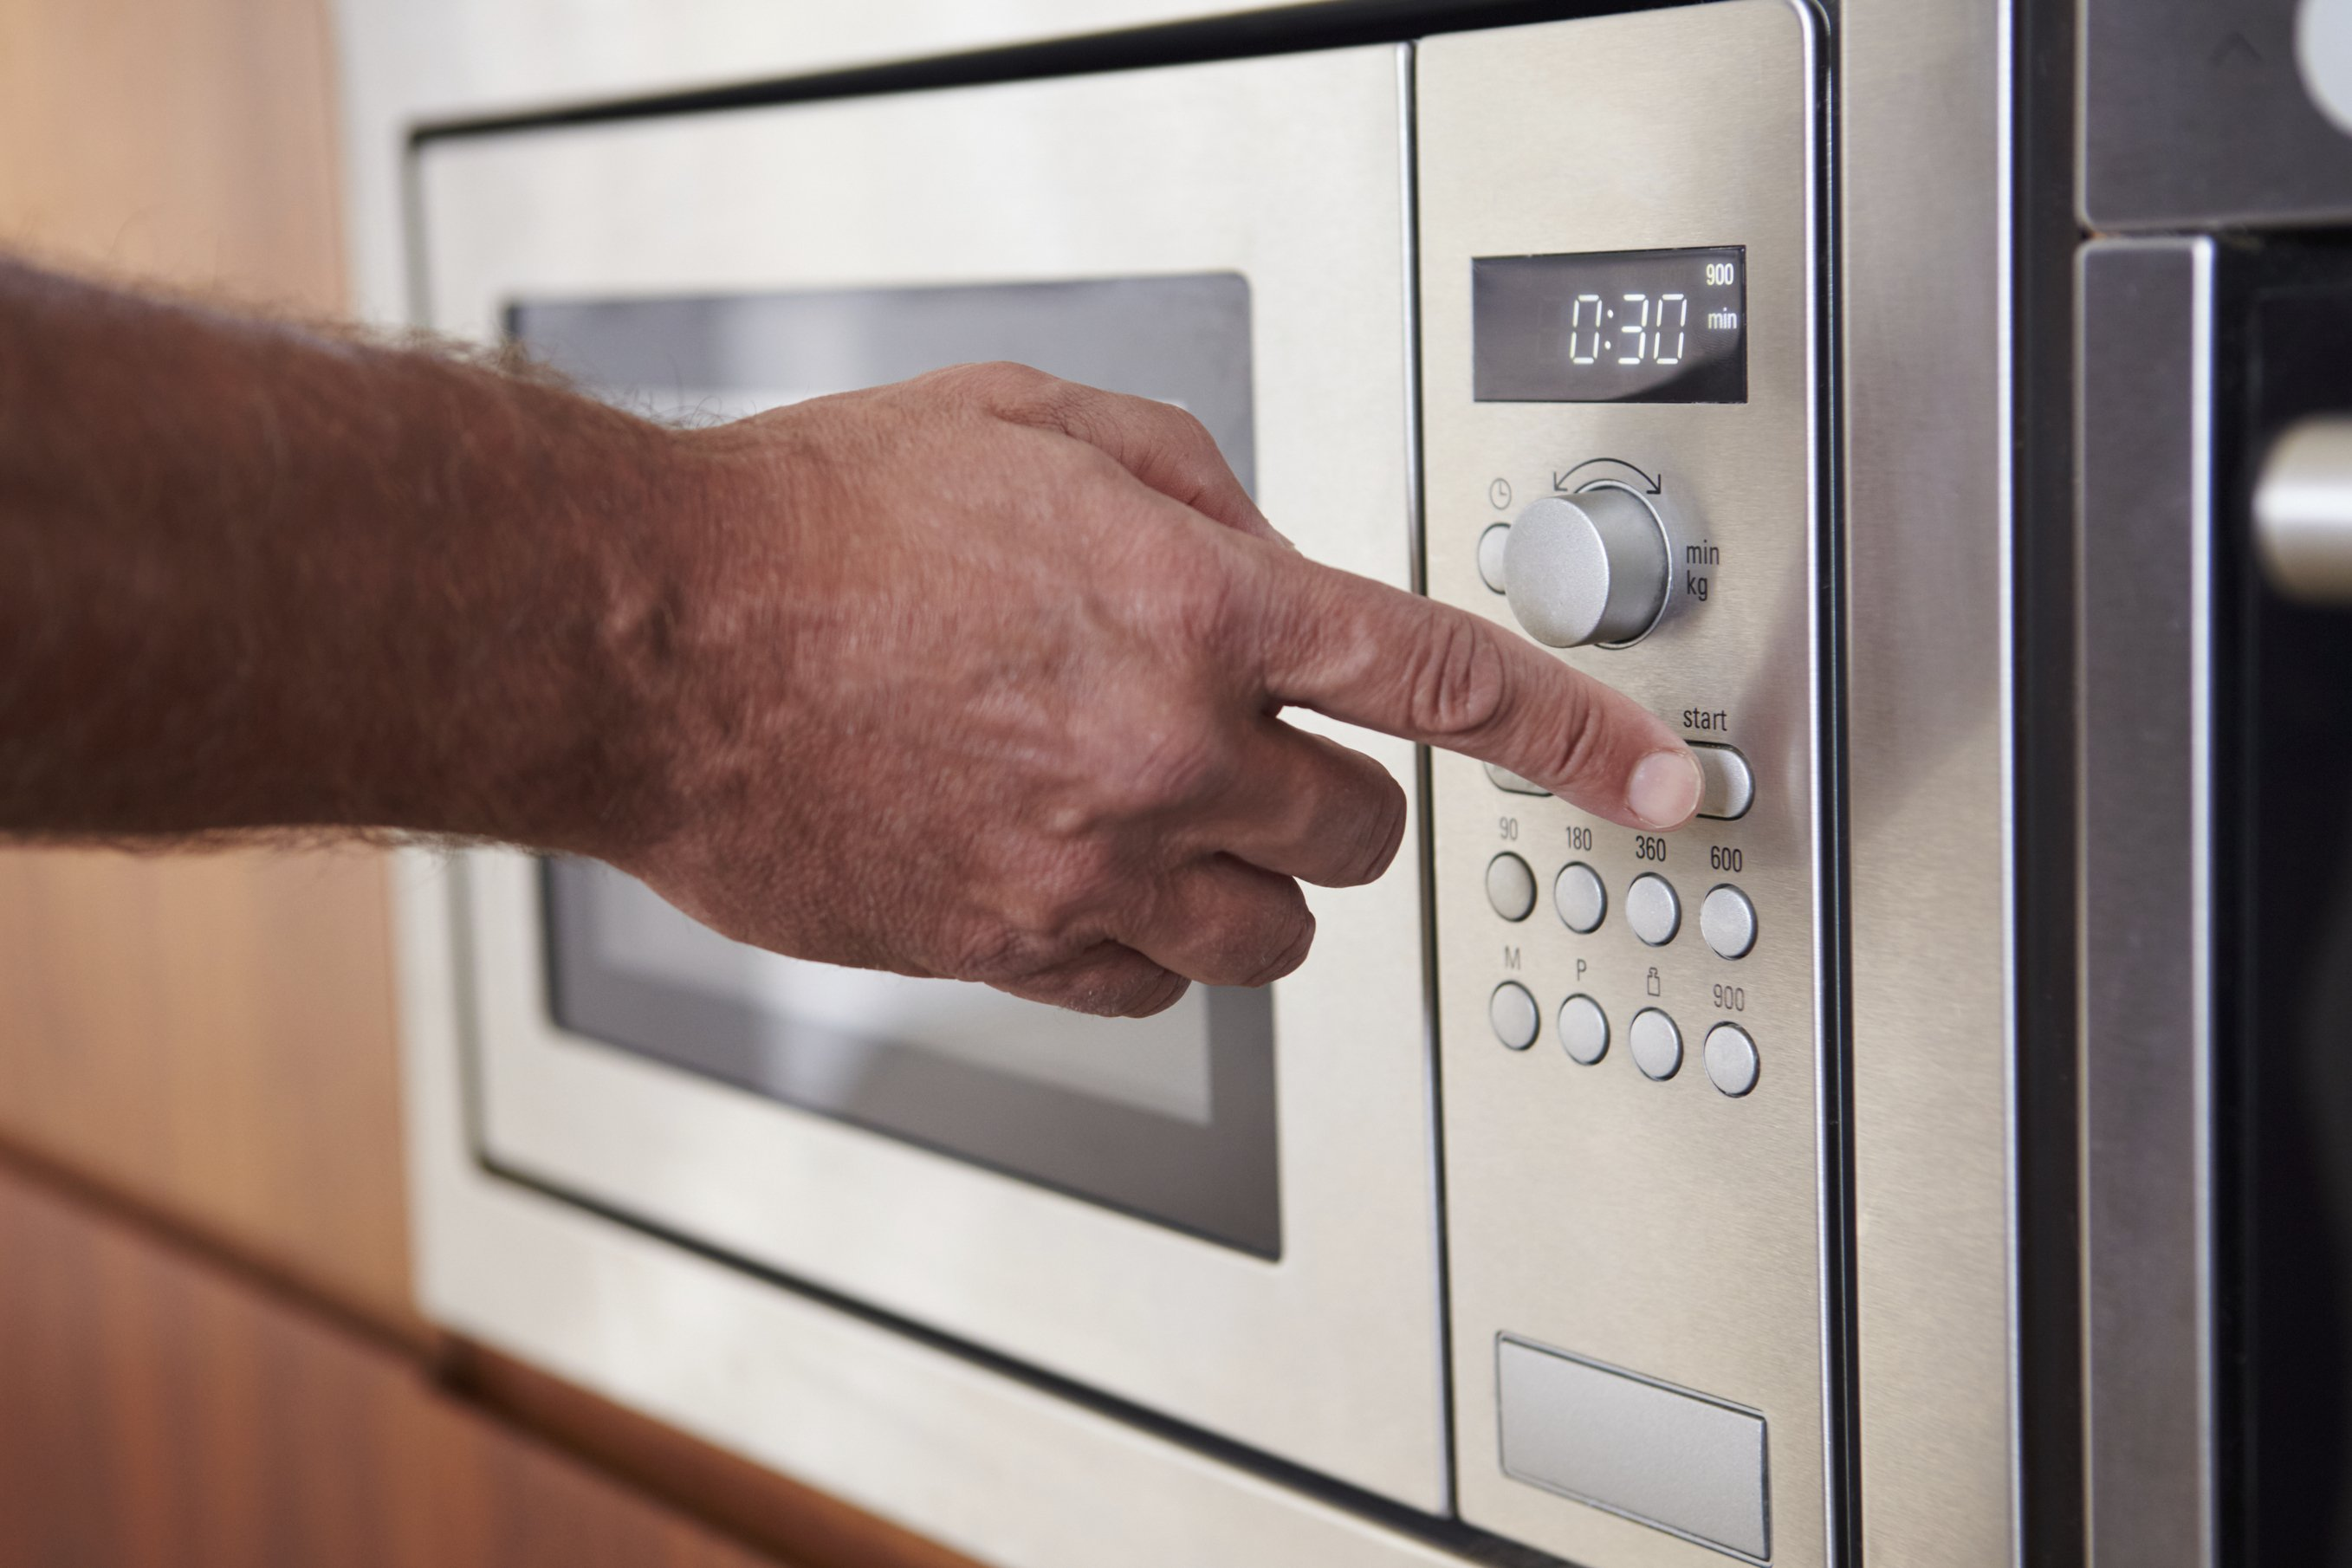 Oven Repair San Antonio, TX